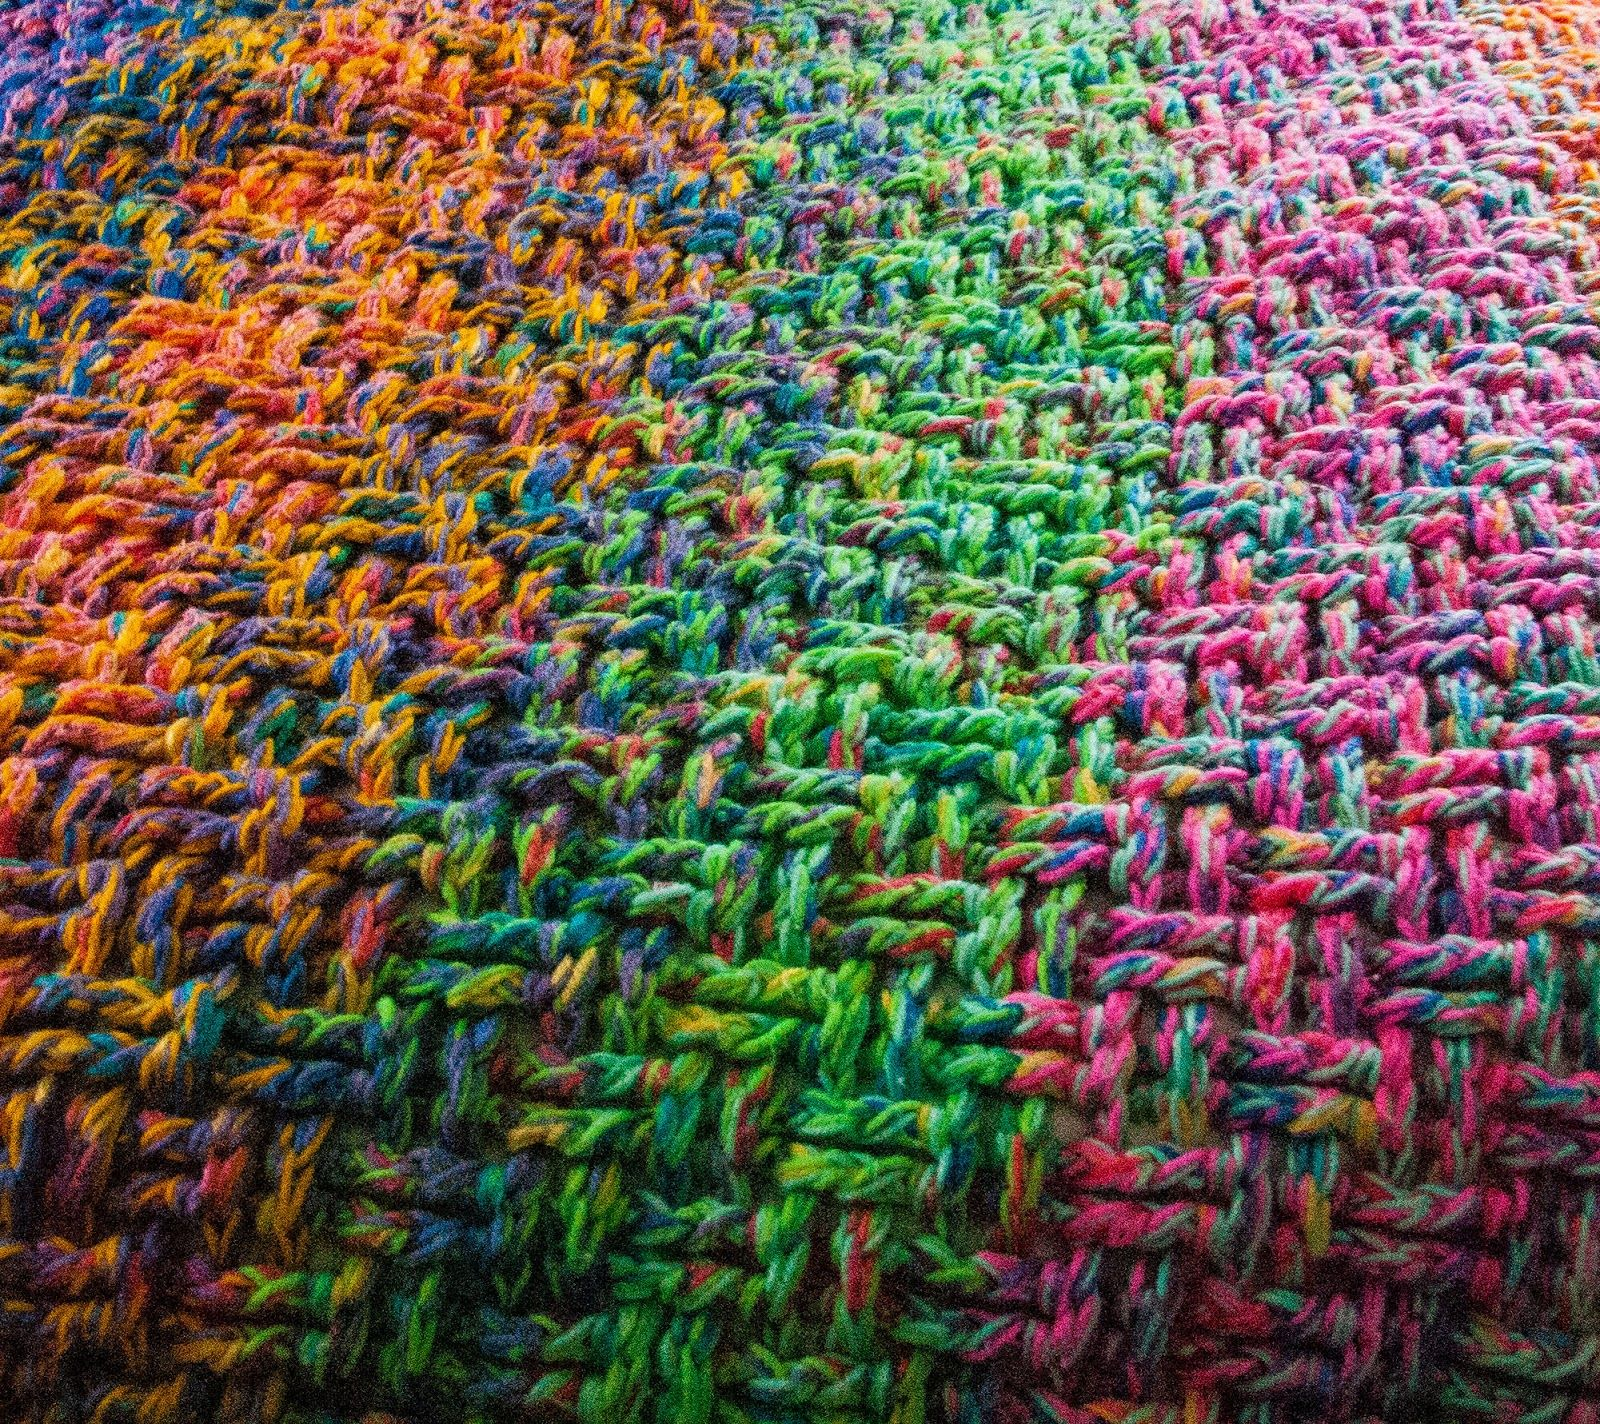 How To Knit Stitches On Scrap Yarn : Scrap Yarn Crochet on Pinterest